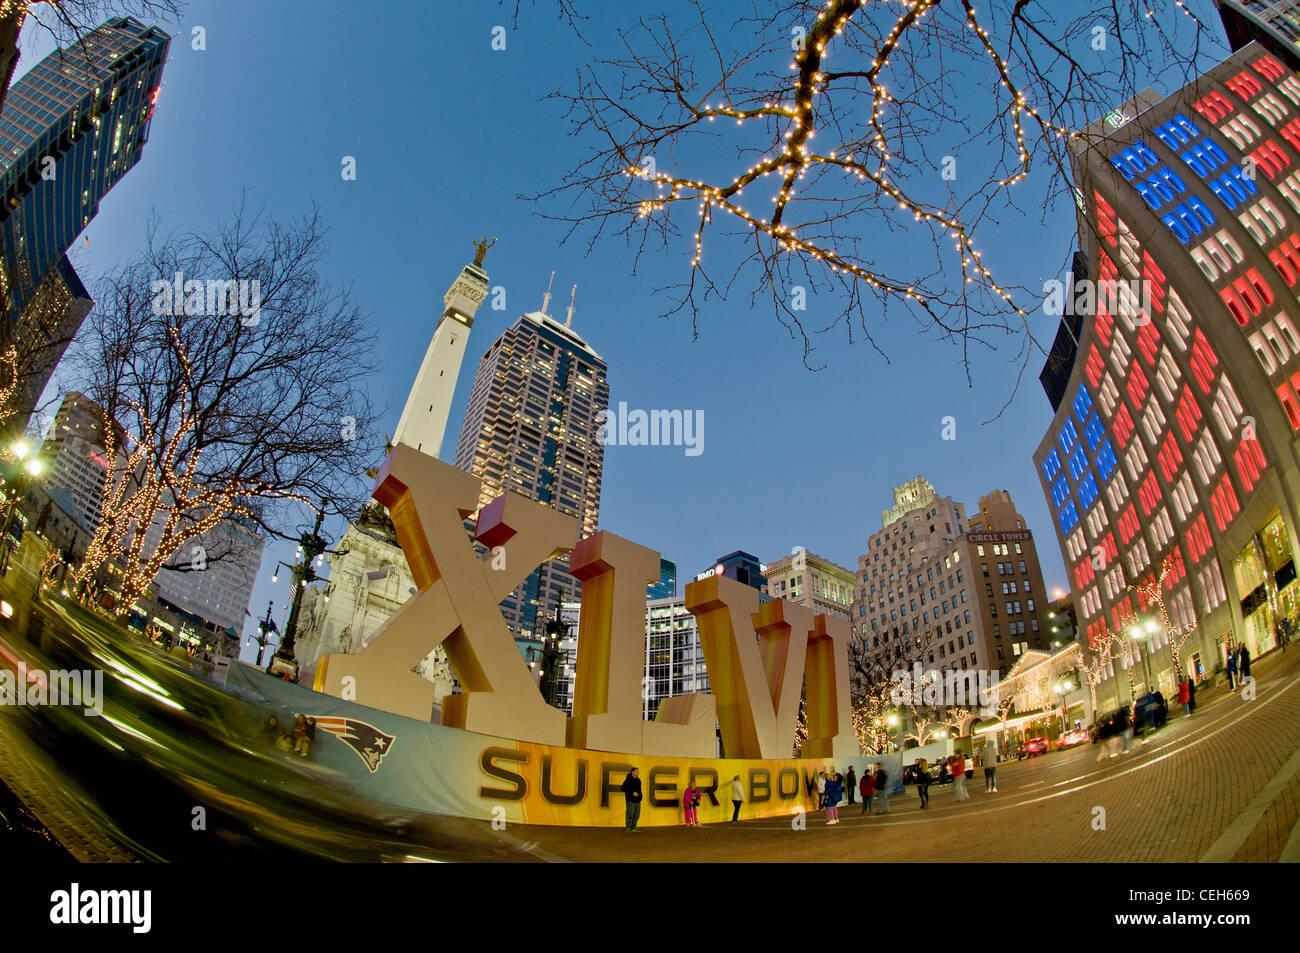 Super Bowl ,Roman Numeral, Downtown Indianapolis, Indiana, Monument Circle, Fish eye Lens , Night Lights - Stock Image